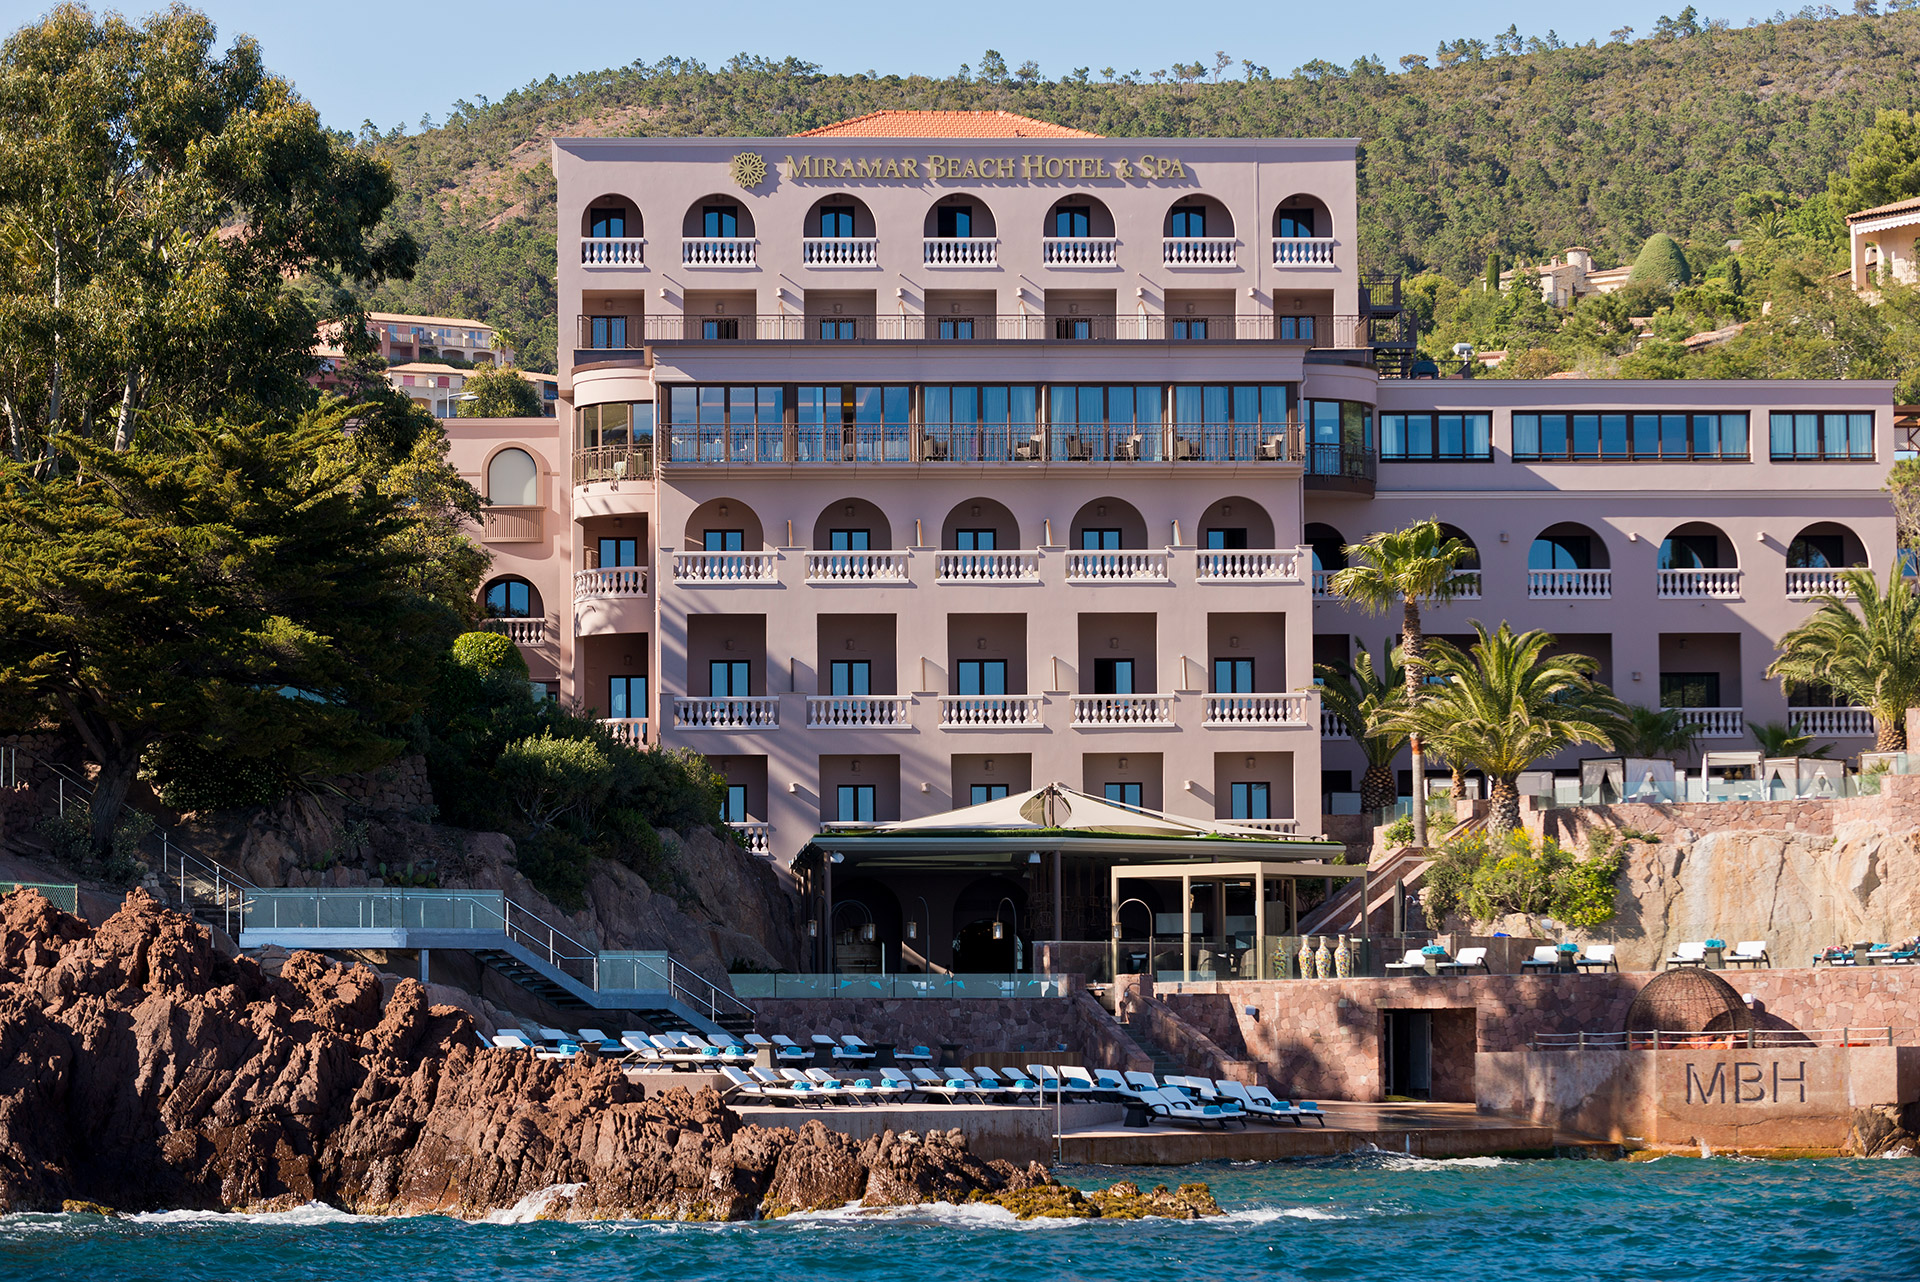 Miramar Beach Hôtel & Spa - Cannes Lion